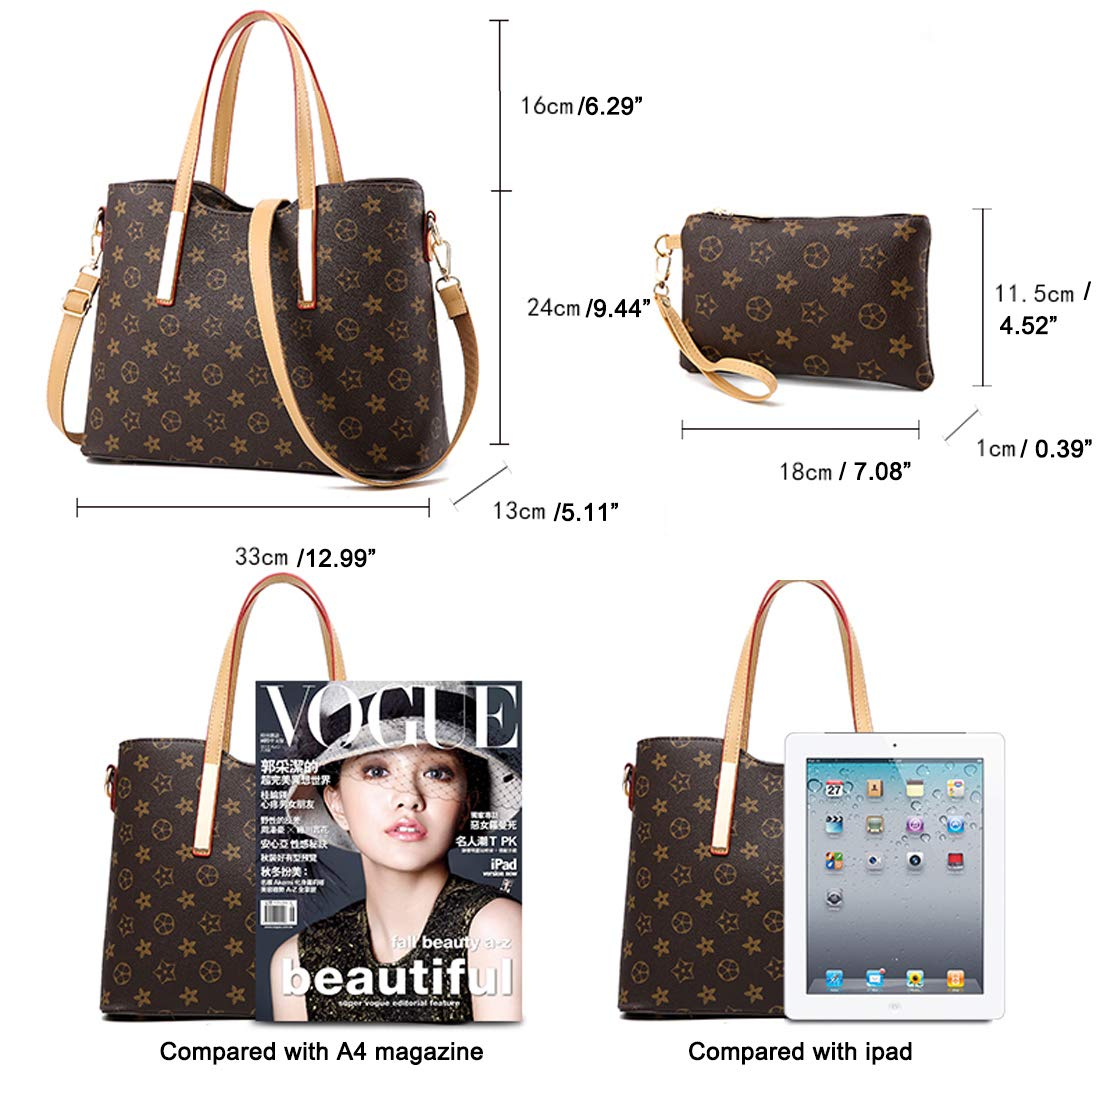 ZUNIYAMAMA Waterproof Scratch Resistant Synthetic Leather Lady Top Handle Handbags Set for Women Purses Shoulder Bag Fashion Tote Bags Casual Daypack by ZUNIYAMAMA (Image #5)